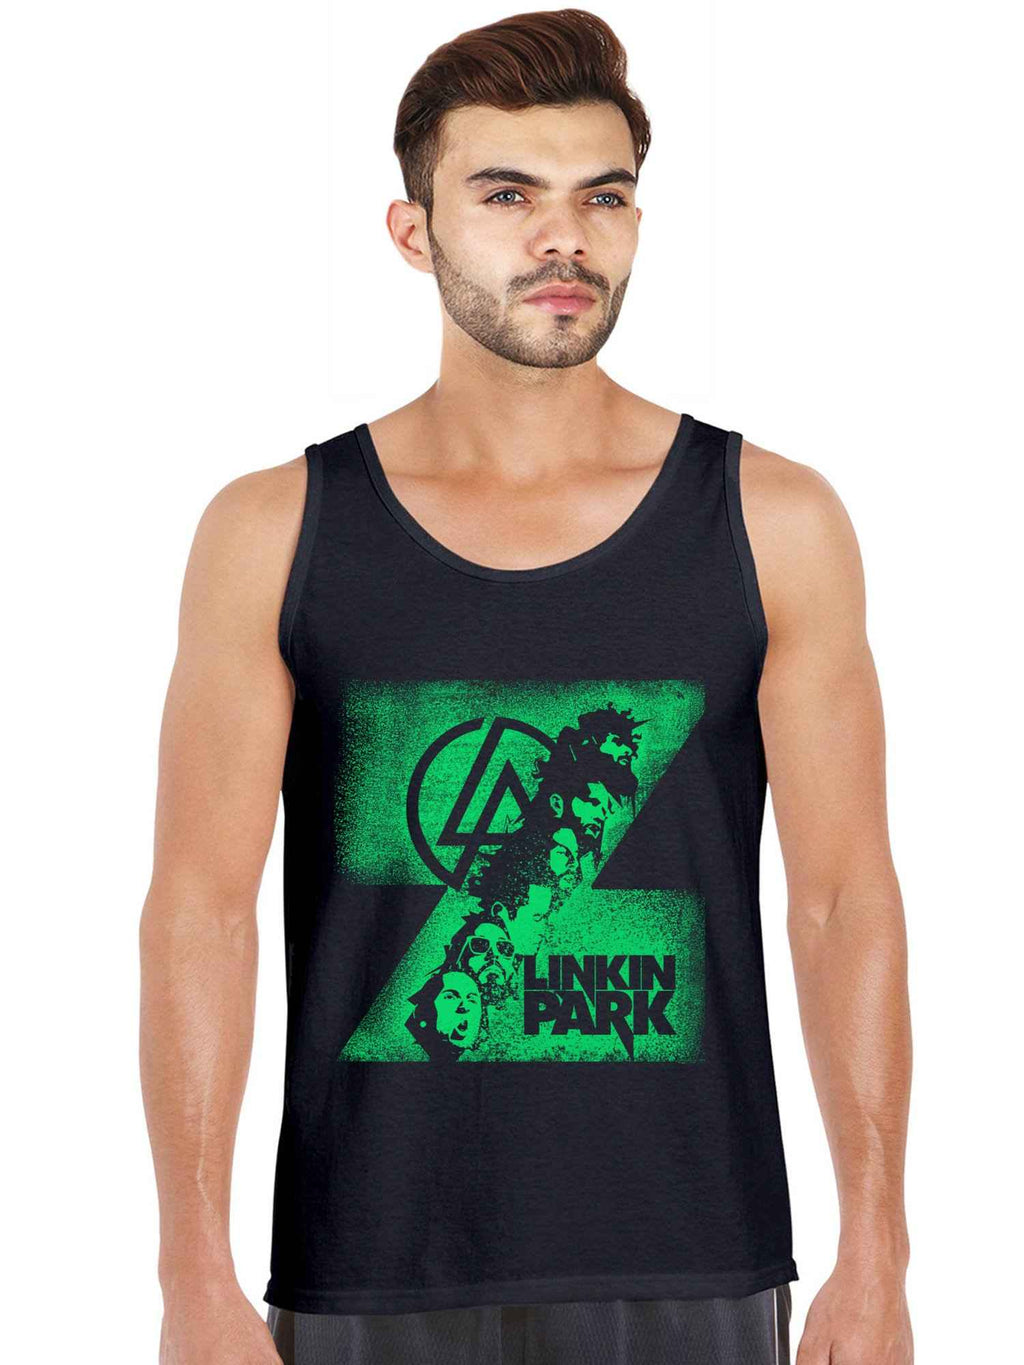 Linkin Park Artists Tank Top - bluehaat